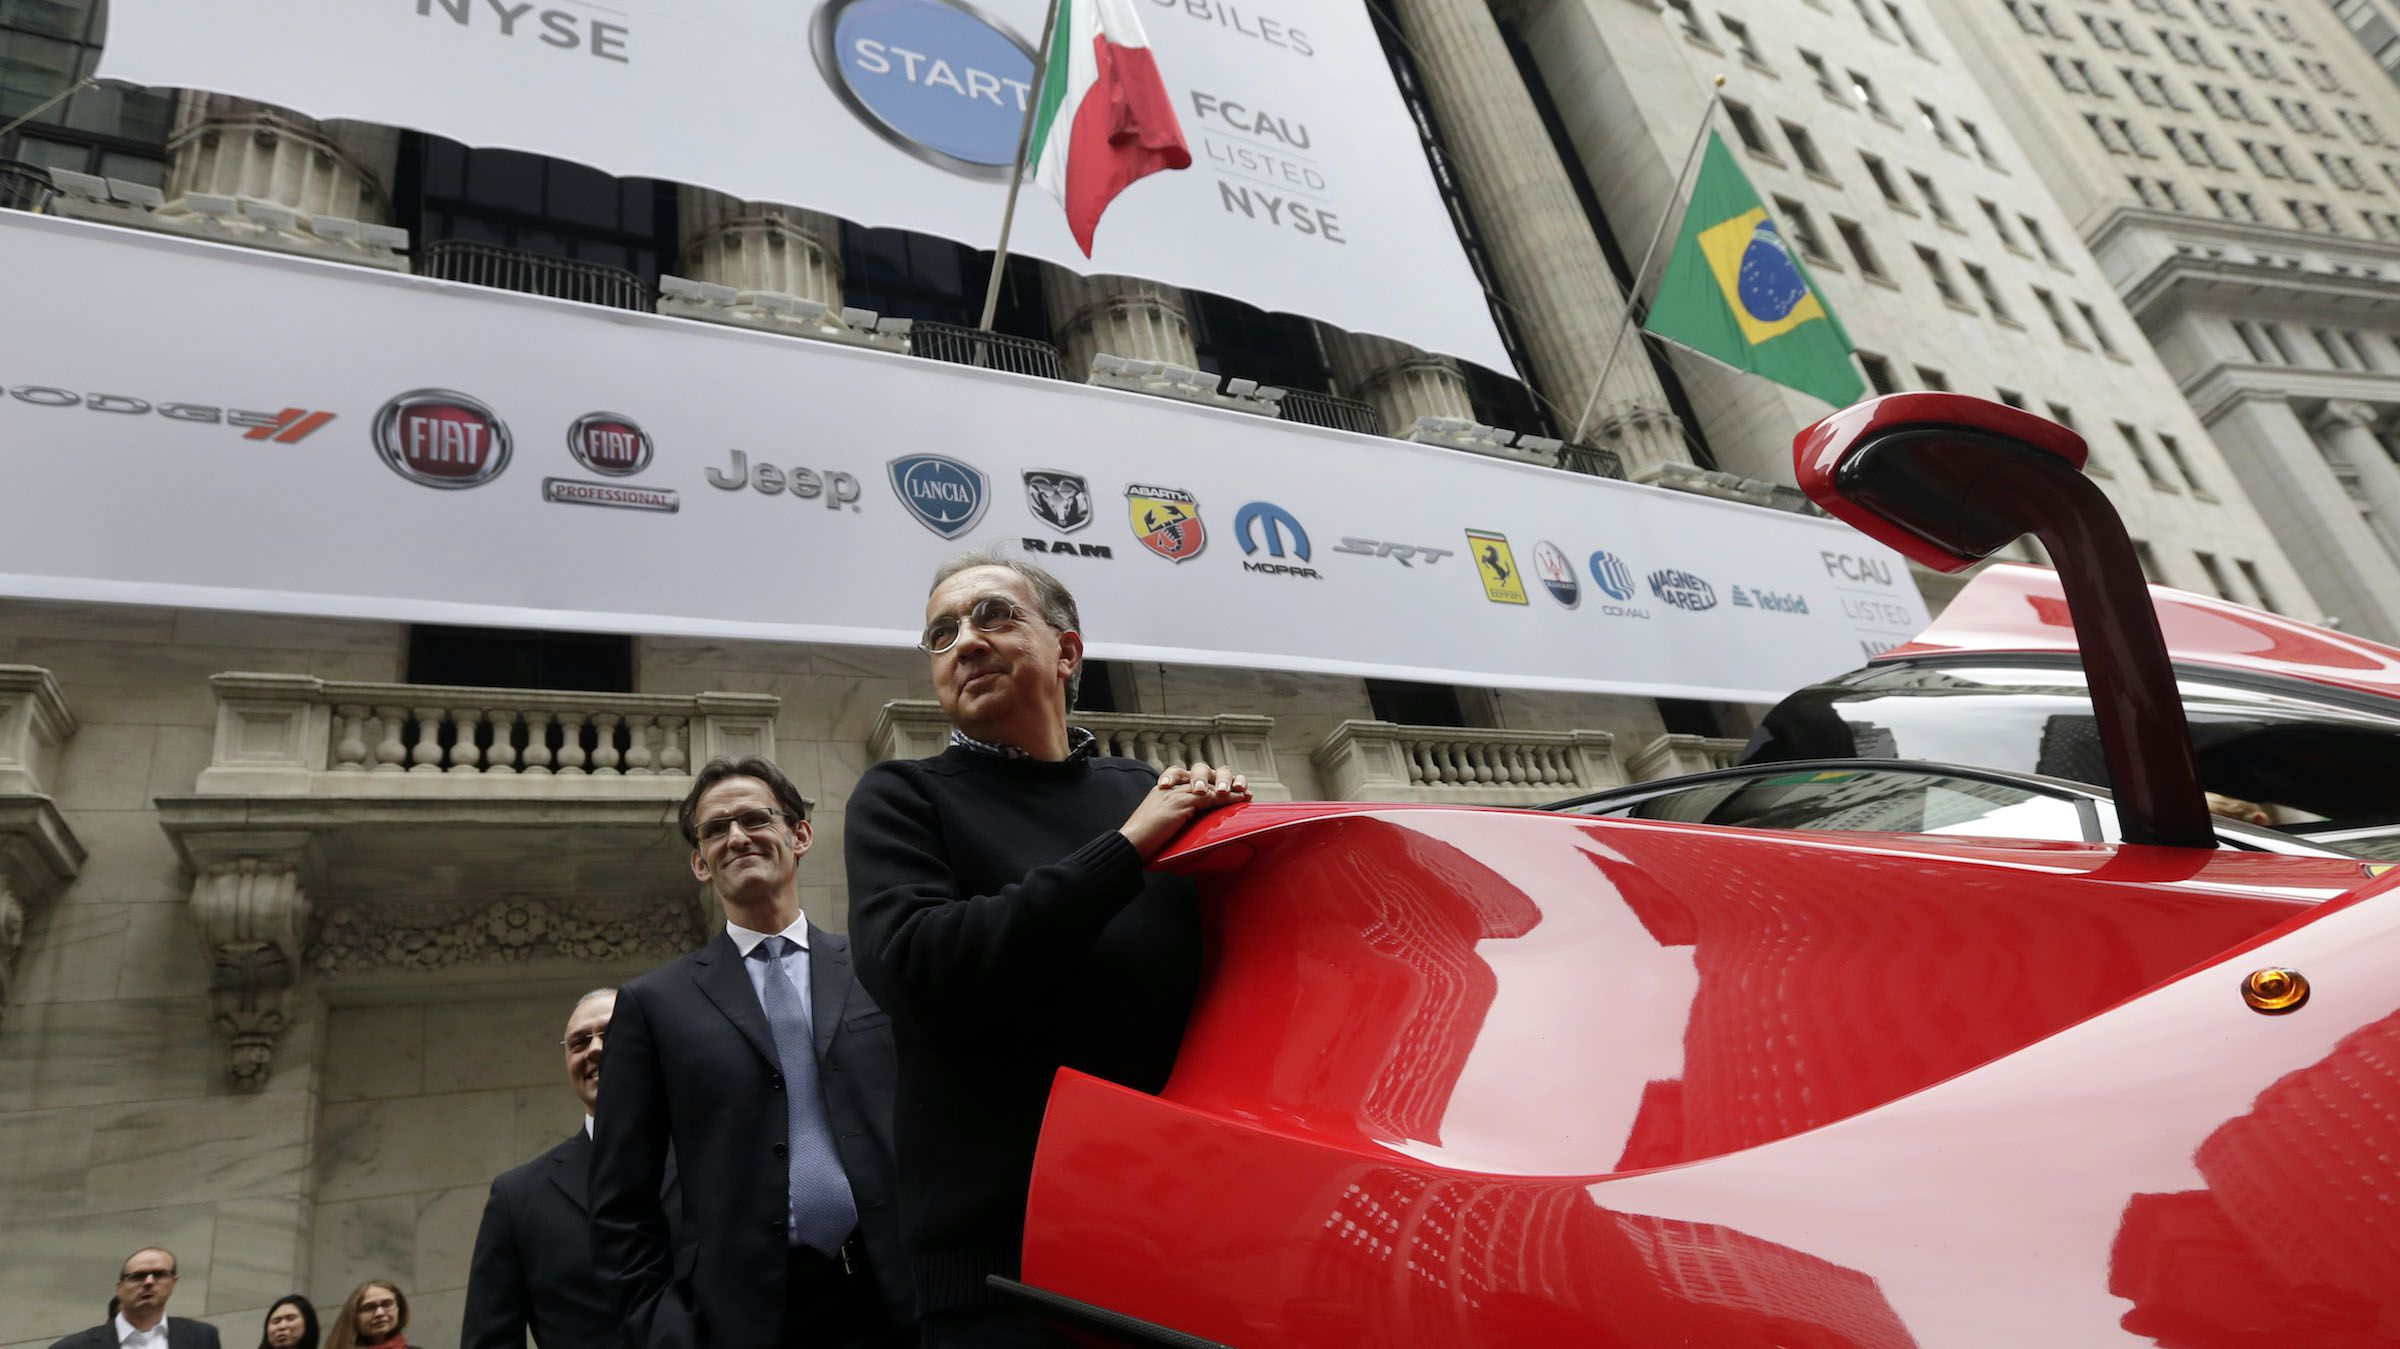 Fiat Chrysler Automobiles CEO Sergio Marchionne, right, with company CFO Richard Palmer, closes the door of a Ferrari LaFerrari, outside the New York Stock Exchange, after he rang the closing bell, Monday, Oct. 13, 2014. Shares of Fiat Chrysler Automobiles bounced between negative and positive Monday after making their debut on the New York Stock Exchange.